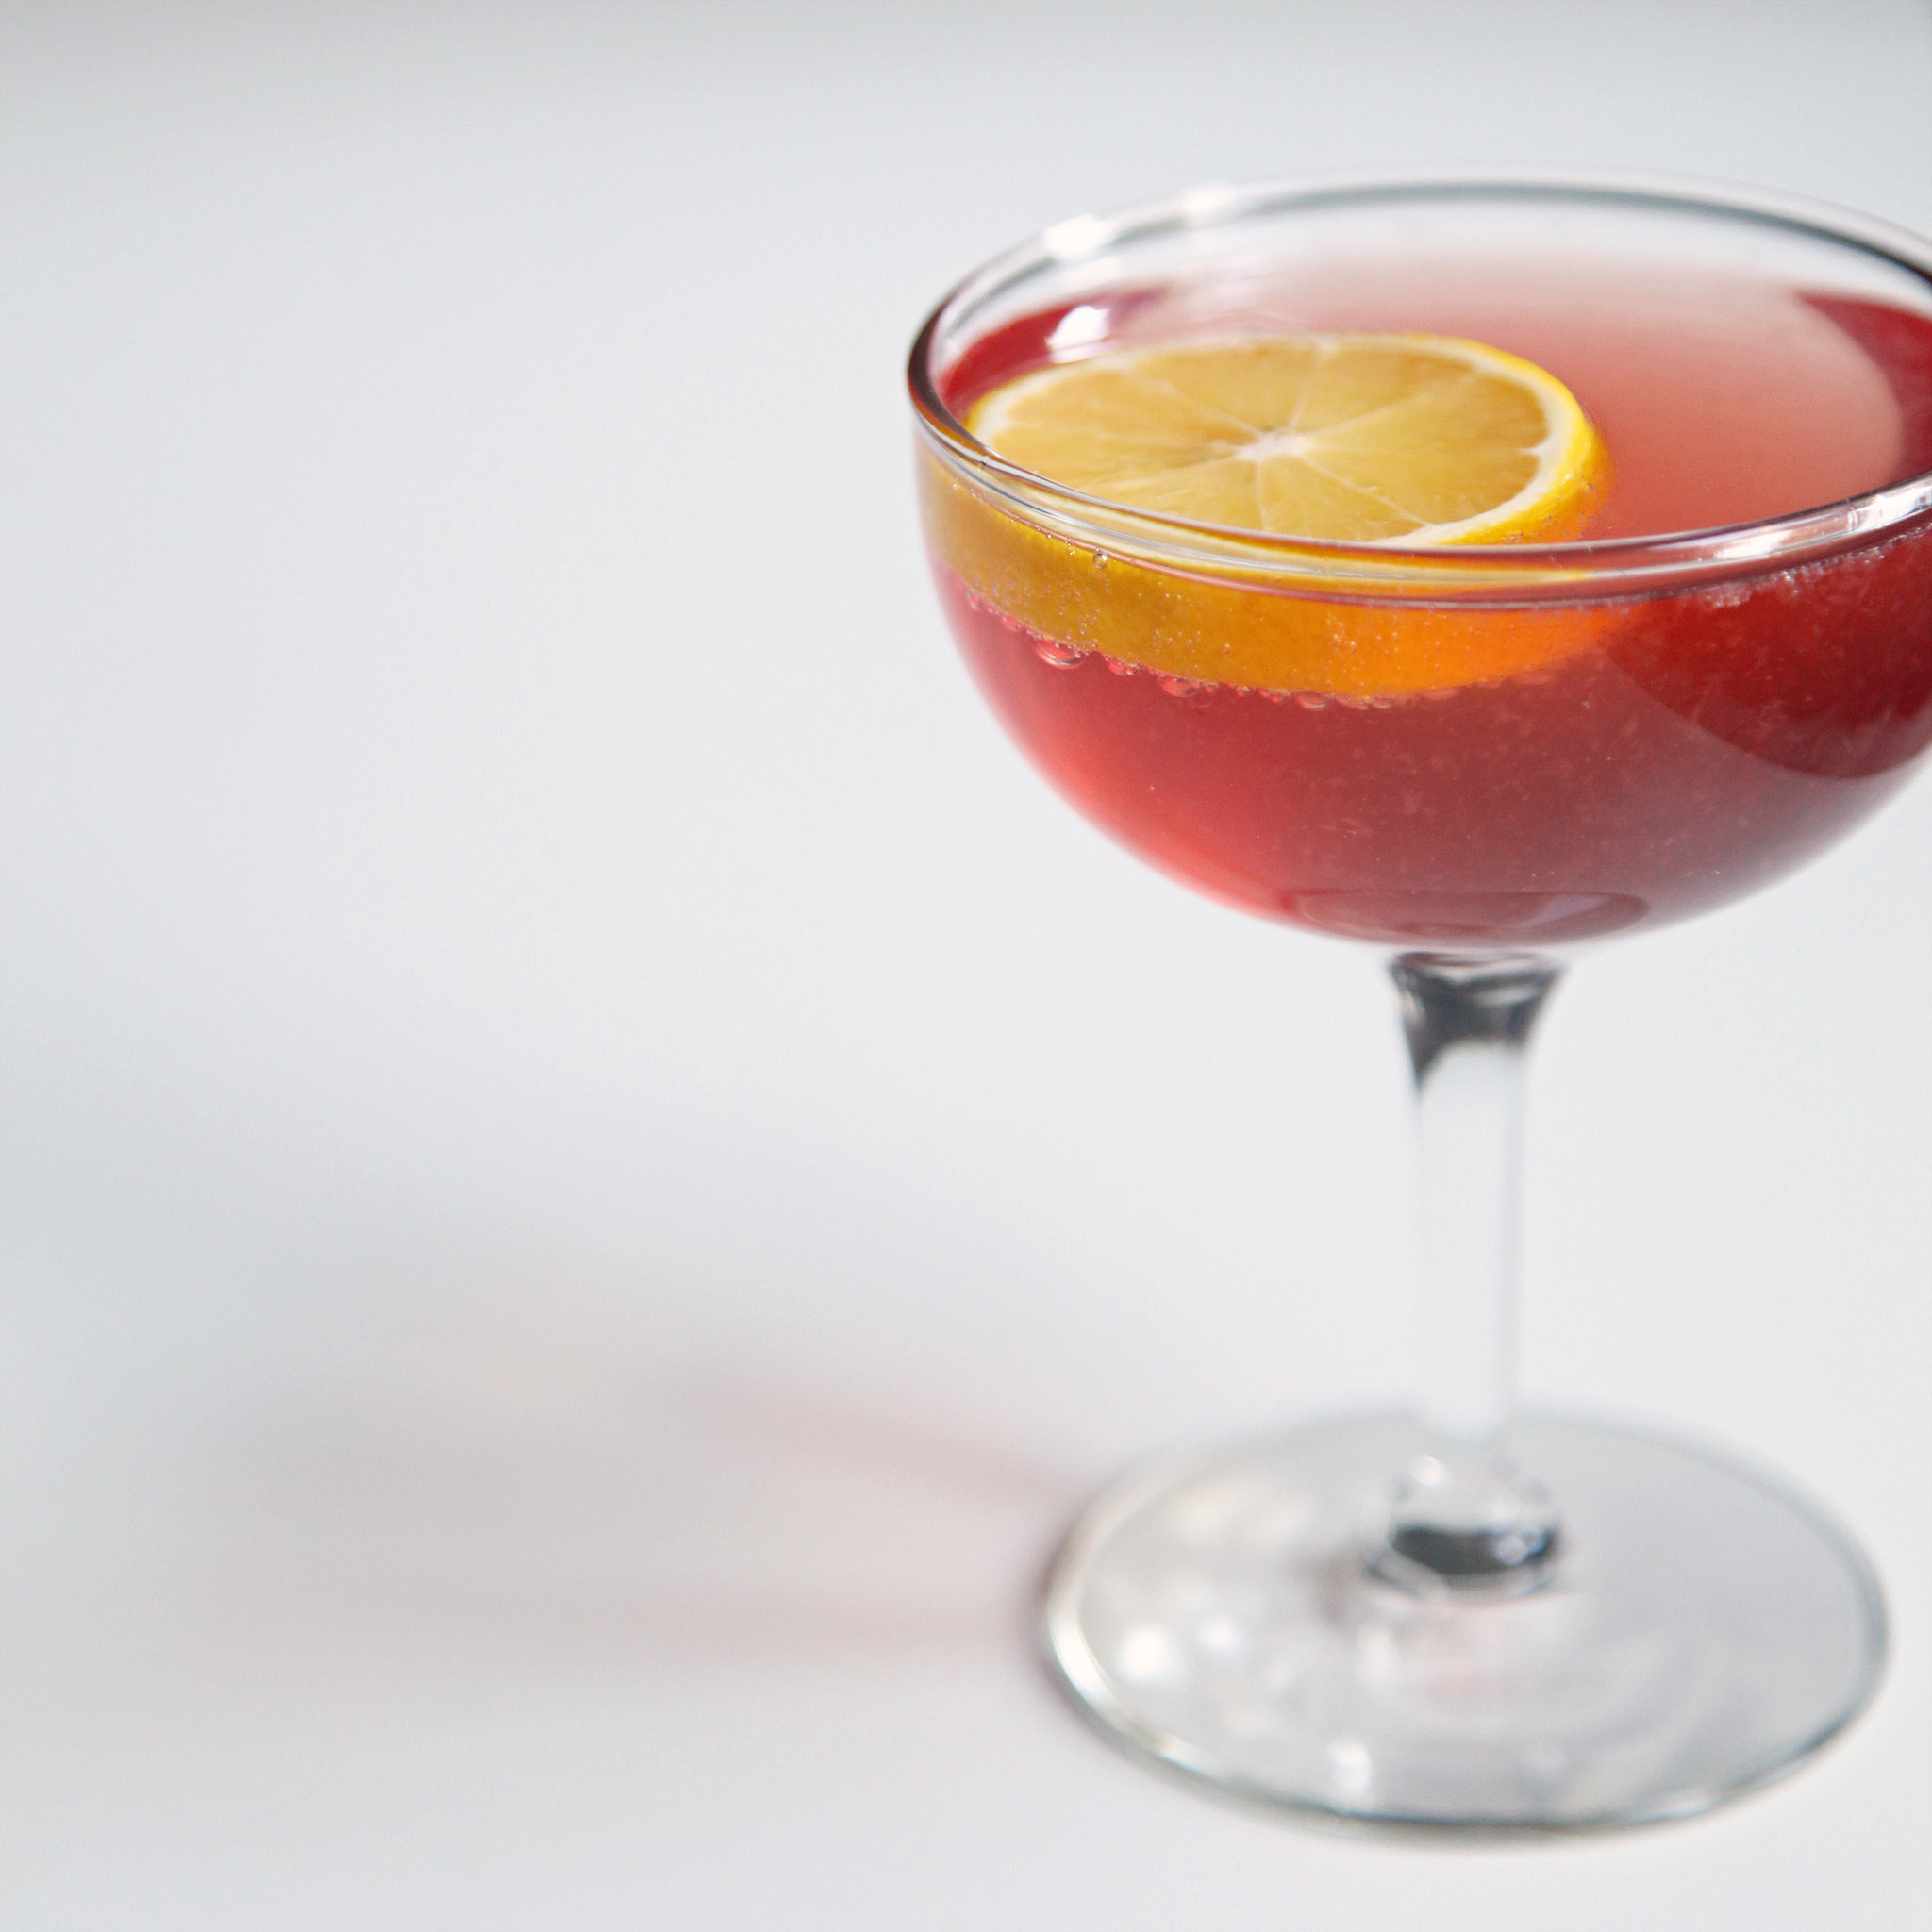 Toast to Christmas With a Festive, Poinsettia-Colored Cocktail